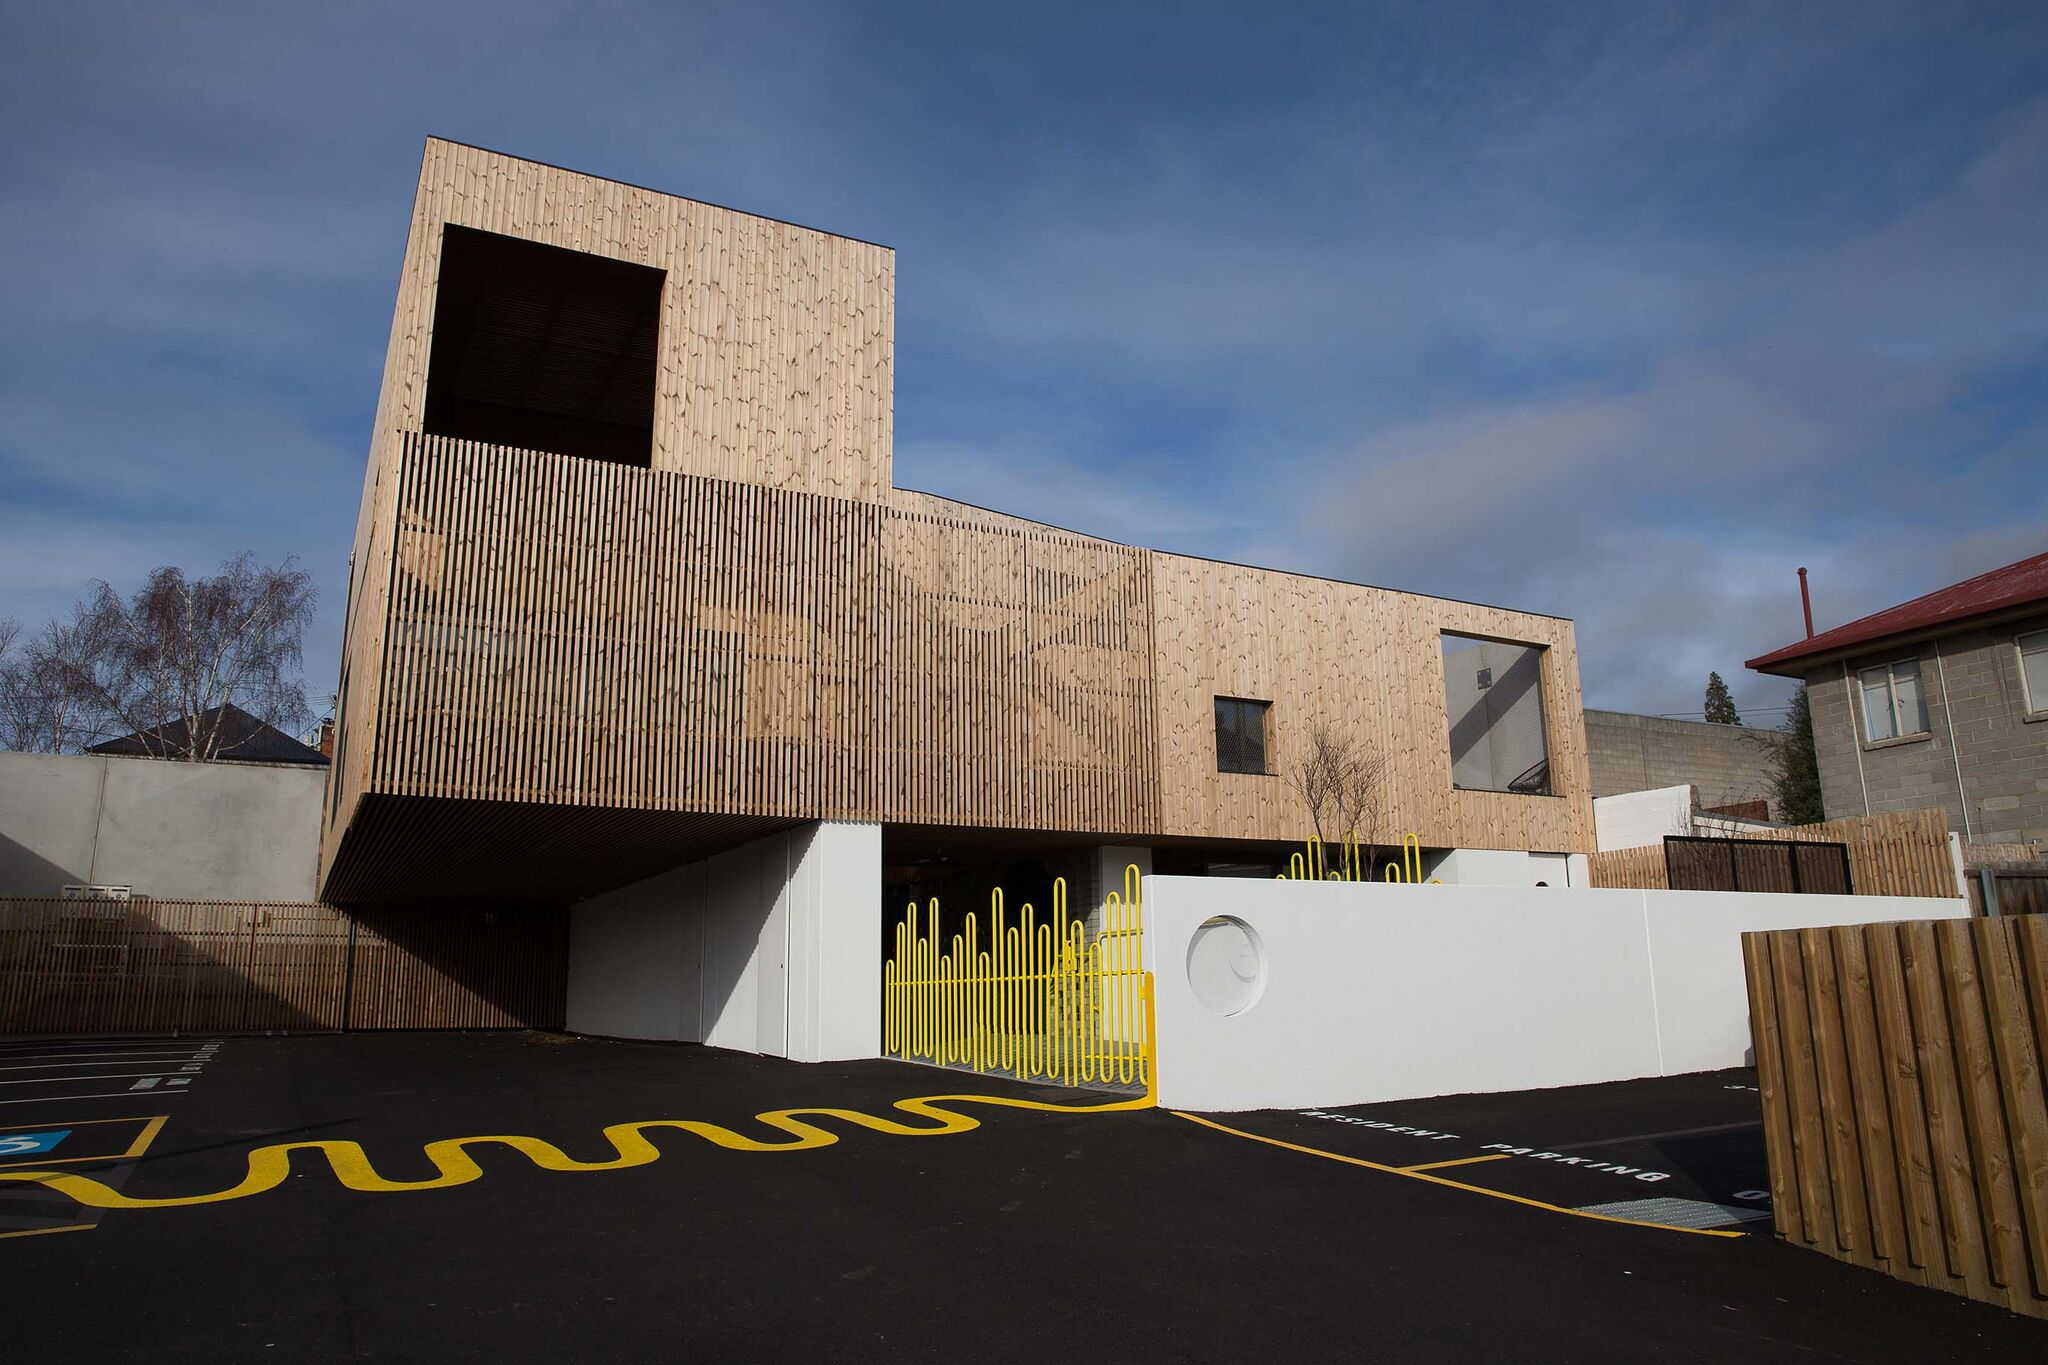 Gallery Of Lady Gowrie By Cumulus Studio Local Australian Architecture & Interior Design South Hobart, Tas Image 2